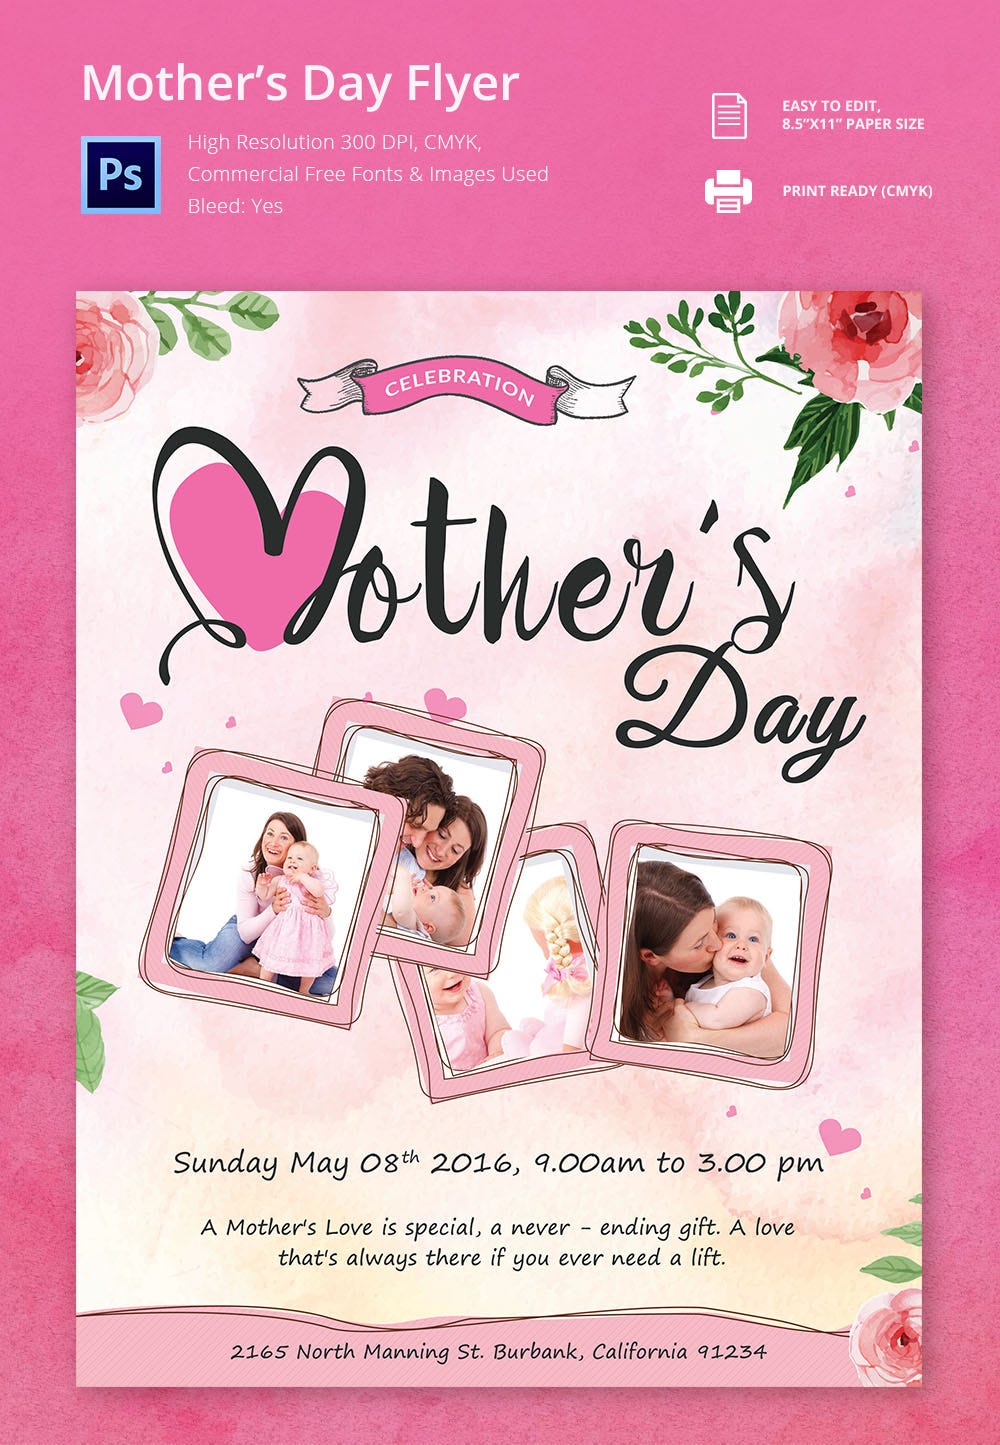 15 beautiful mother s day flyer templates designs customisable mother s day flyer template